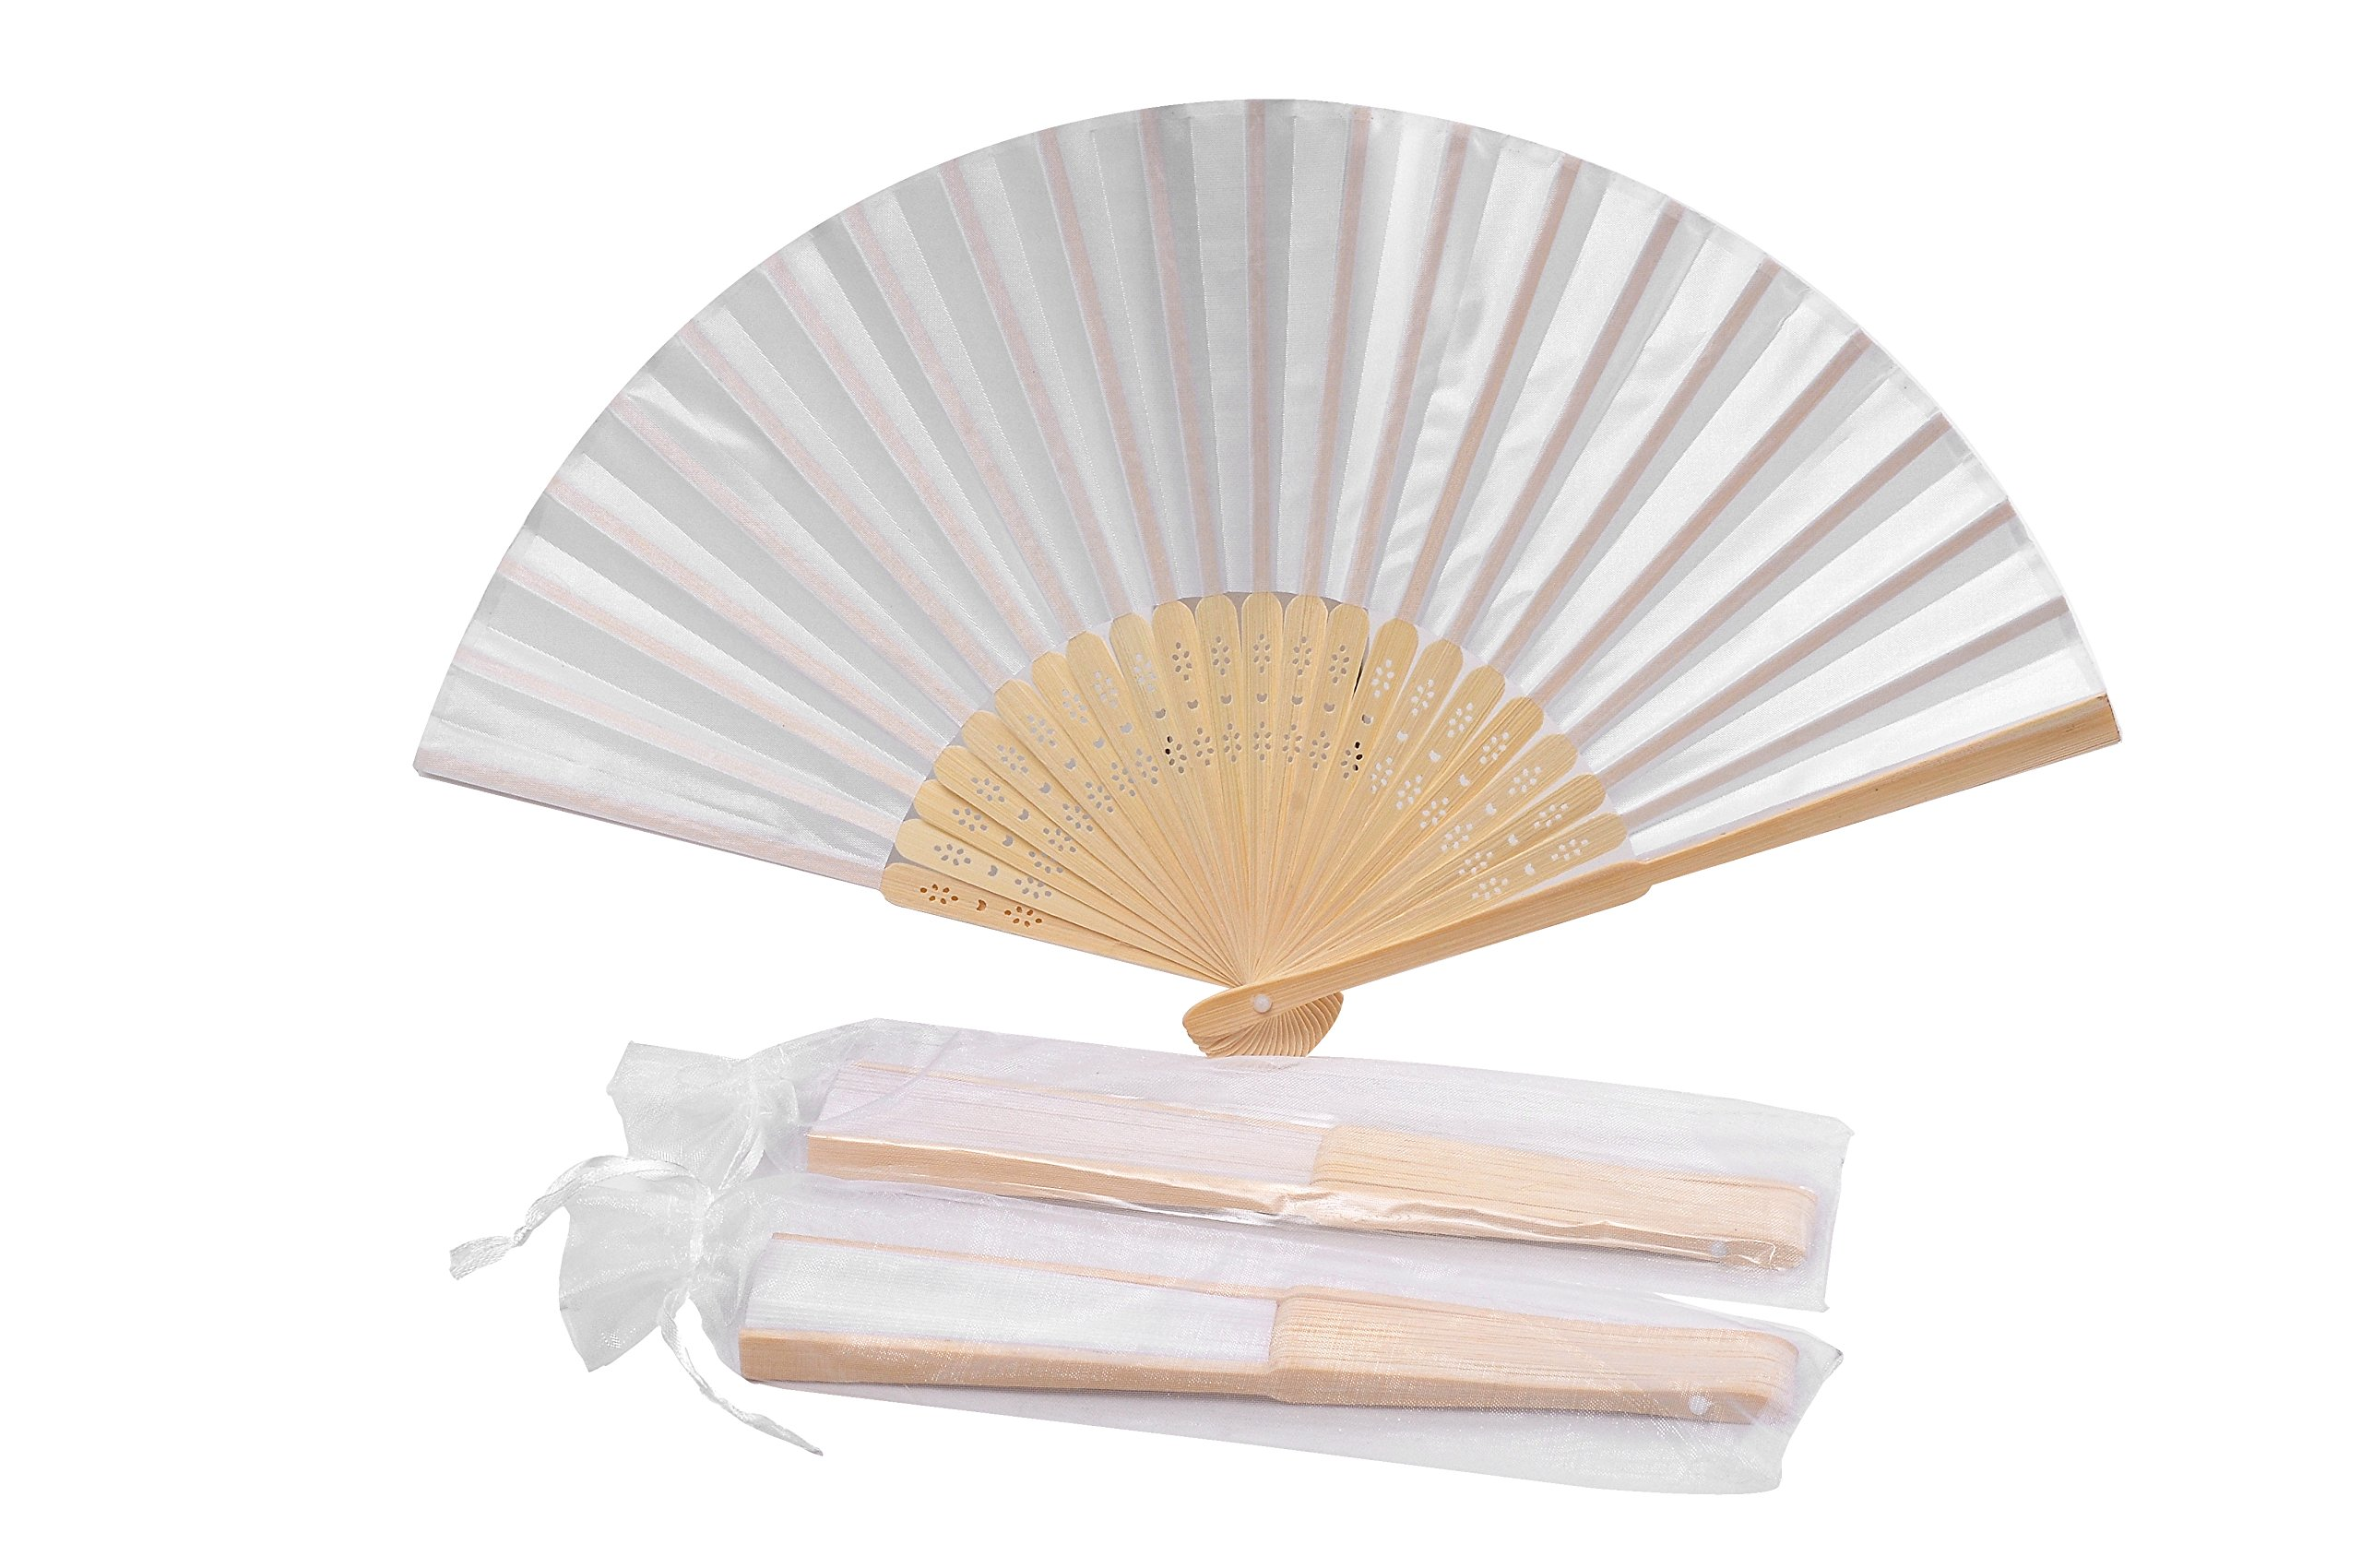 Sepwedd 50pcs White Imitated Silk Fabric Bamboo Folded Hand Fan Bridal Dancing Props Church Wedding Gift Party Favors with Gift Bags by Sepwedd